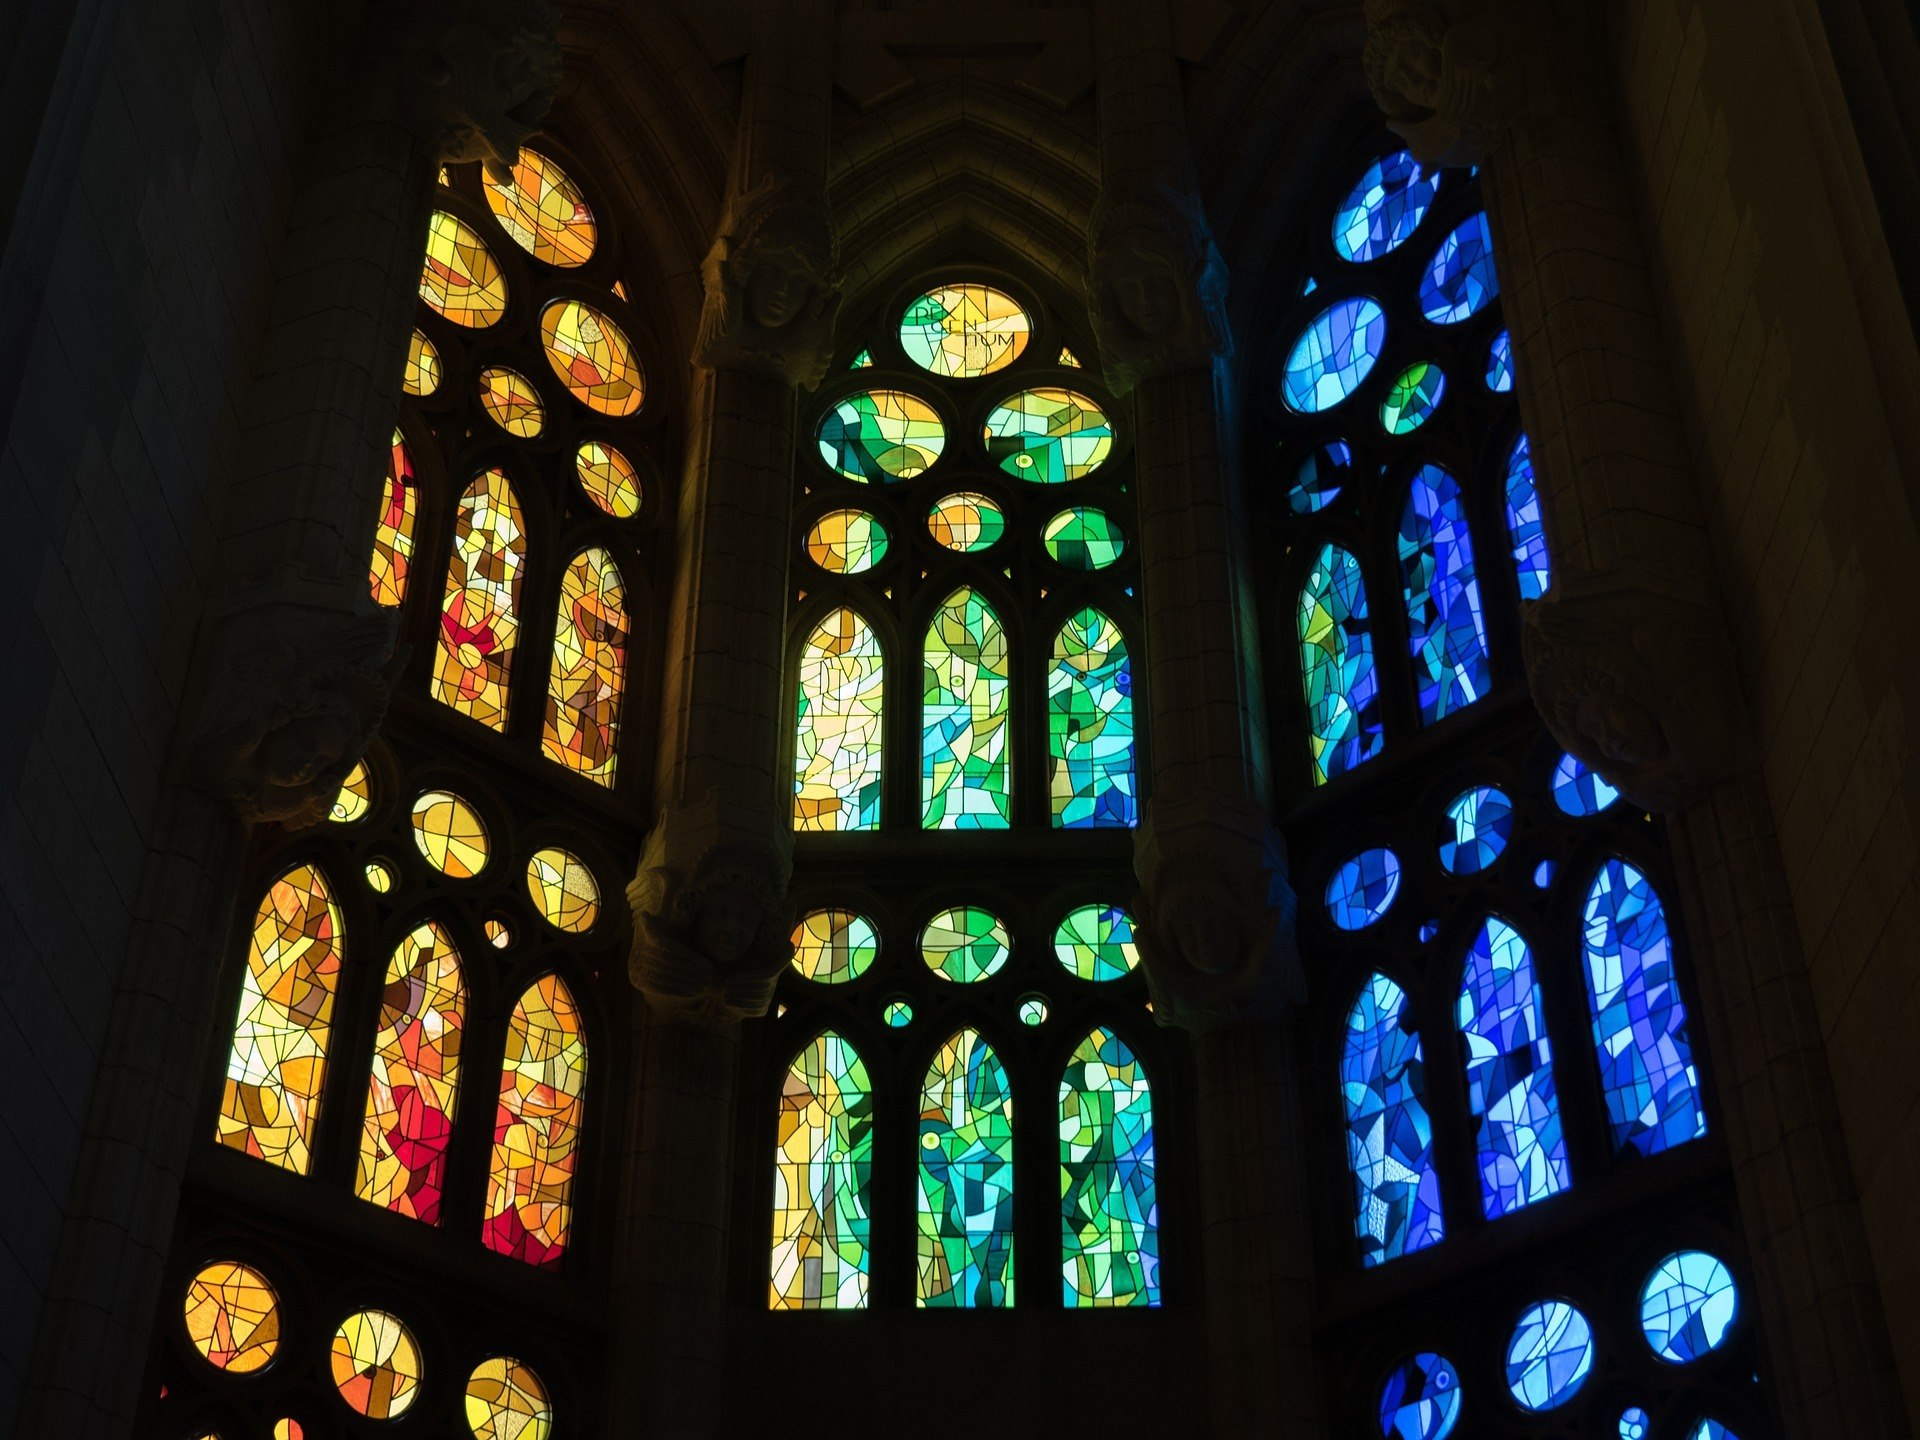 Visiting Barcelona: 5 Places Not to Miss - Sagrada Familia